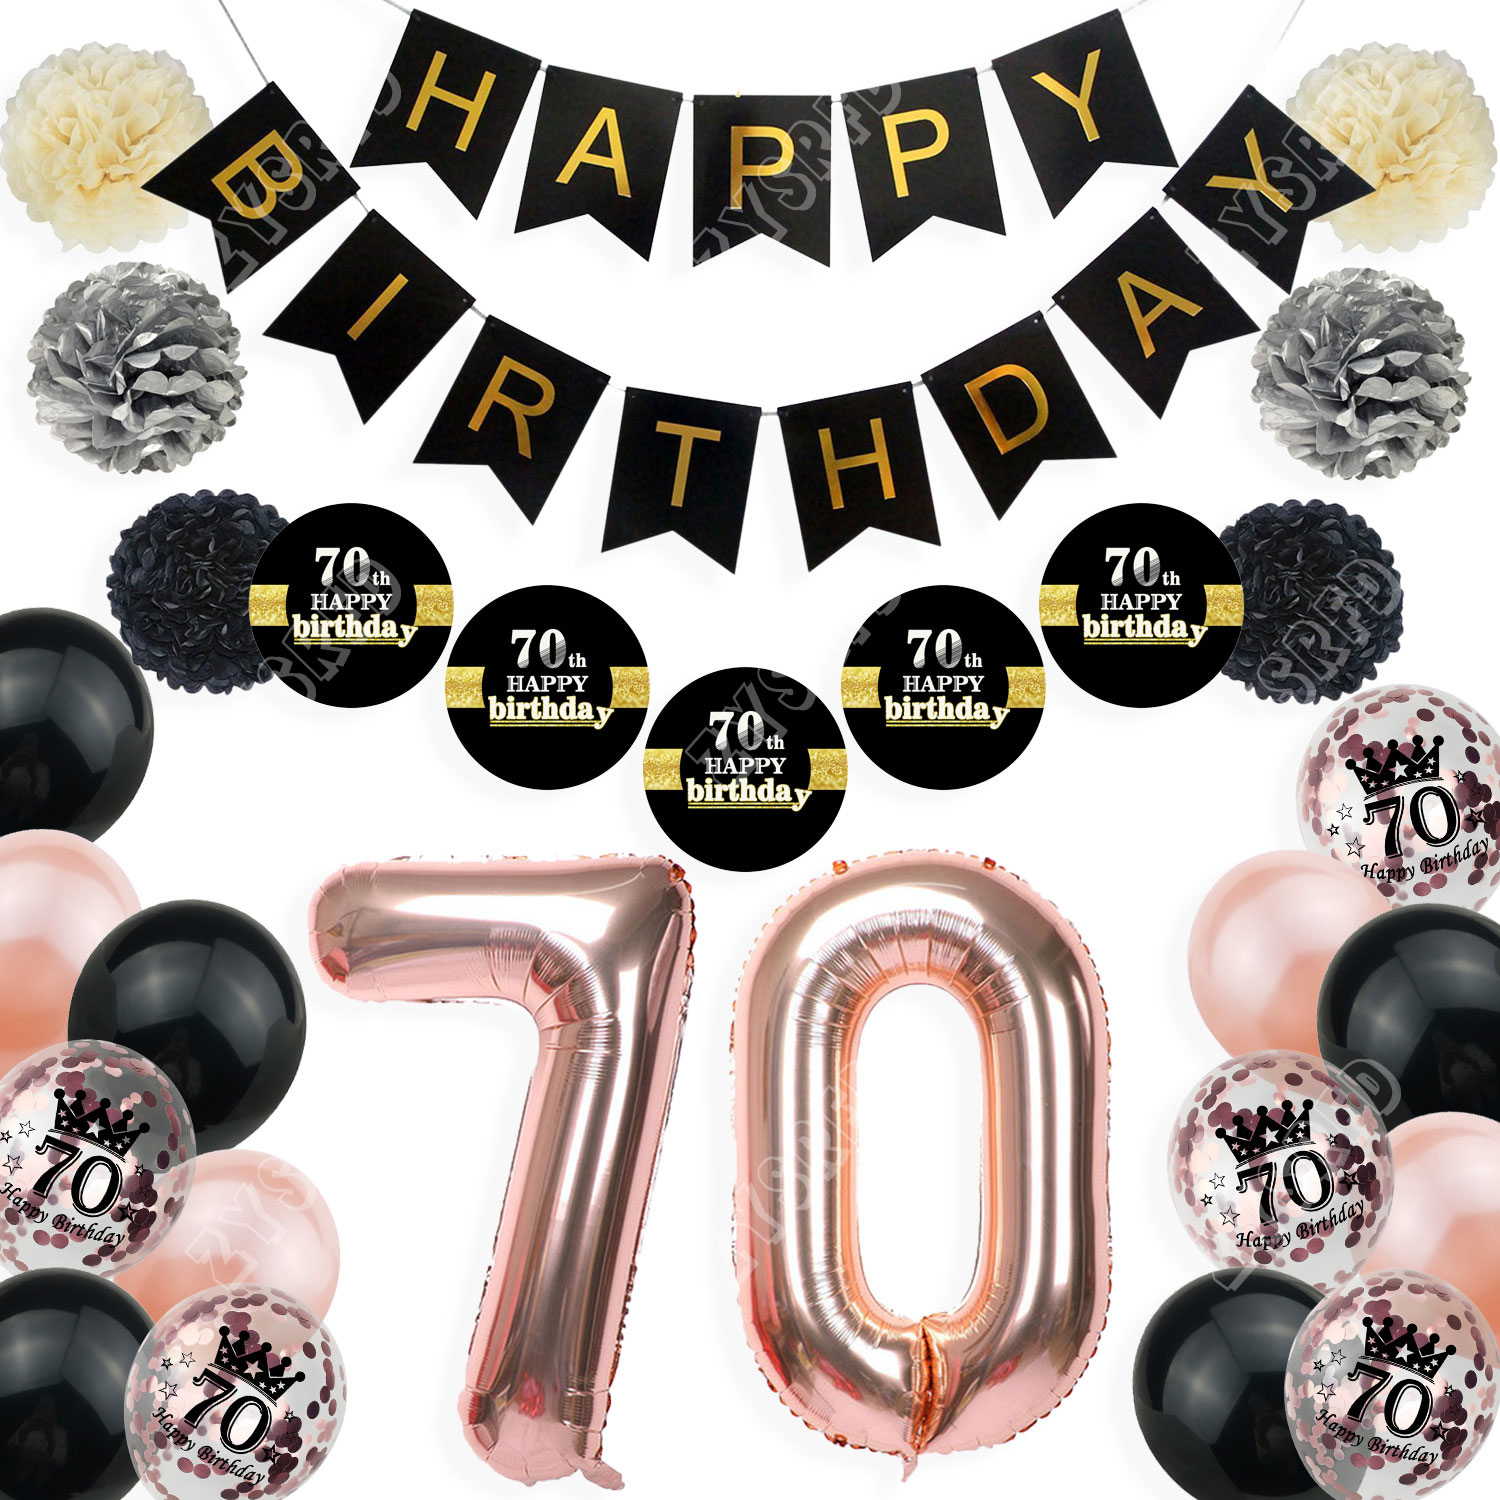 70 Years Old Happy Birthday Balloon Banner Sticker Latex Helium Balloons Paper Pompoms For 70th Anniversary Decorations Adult